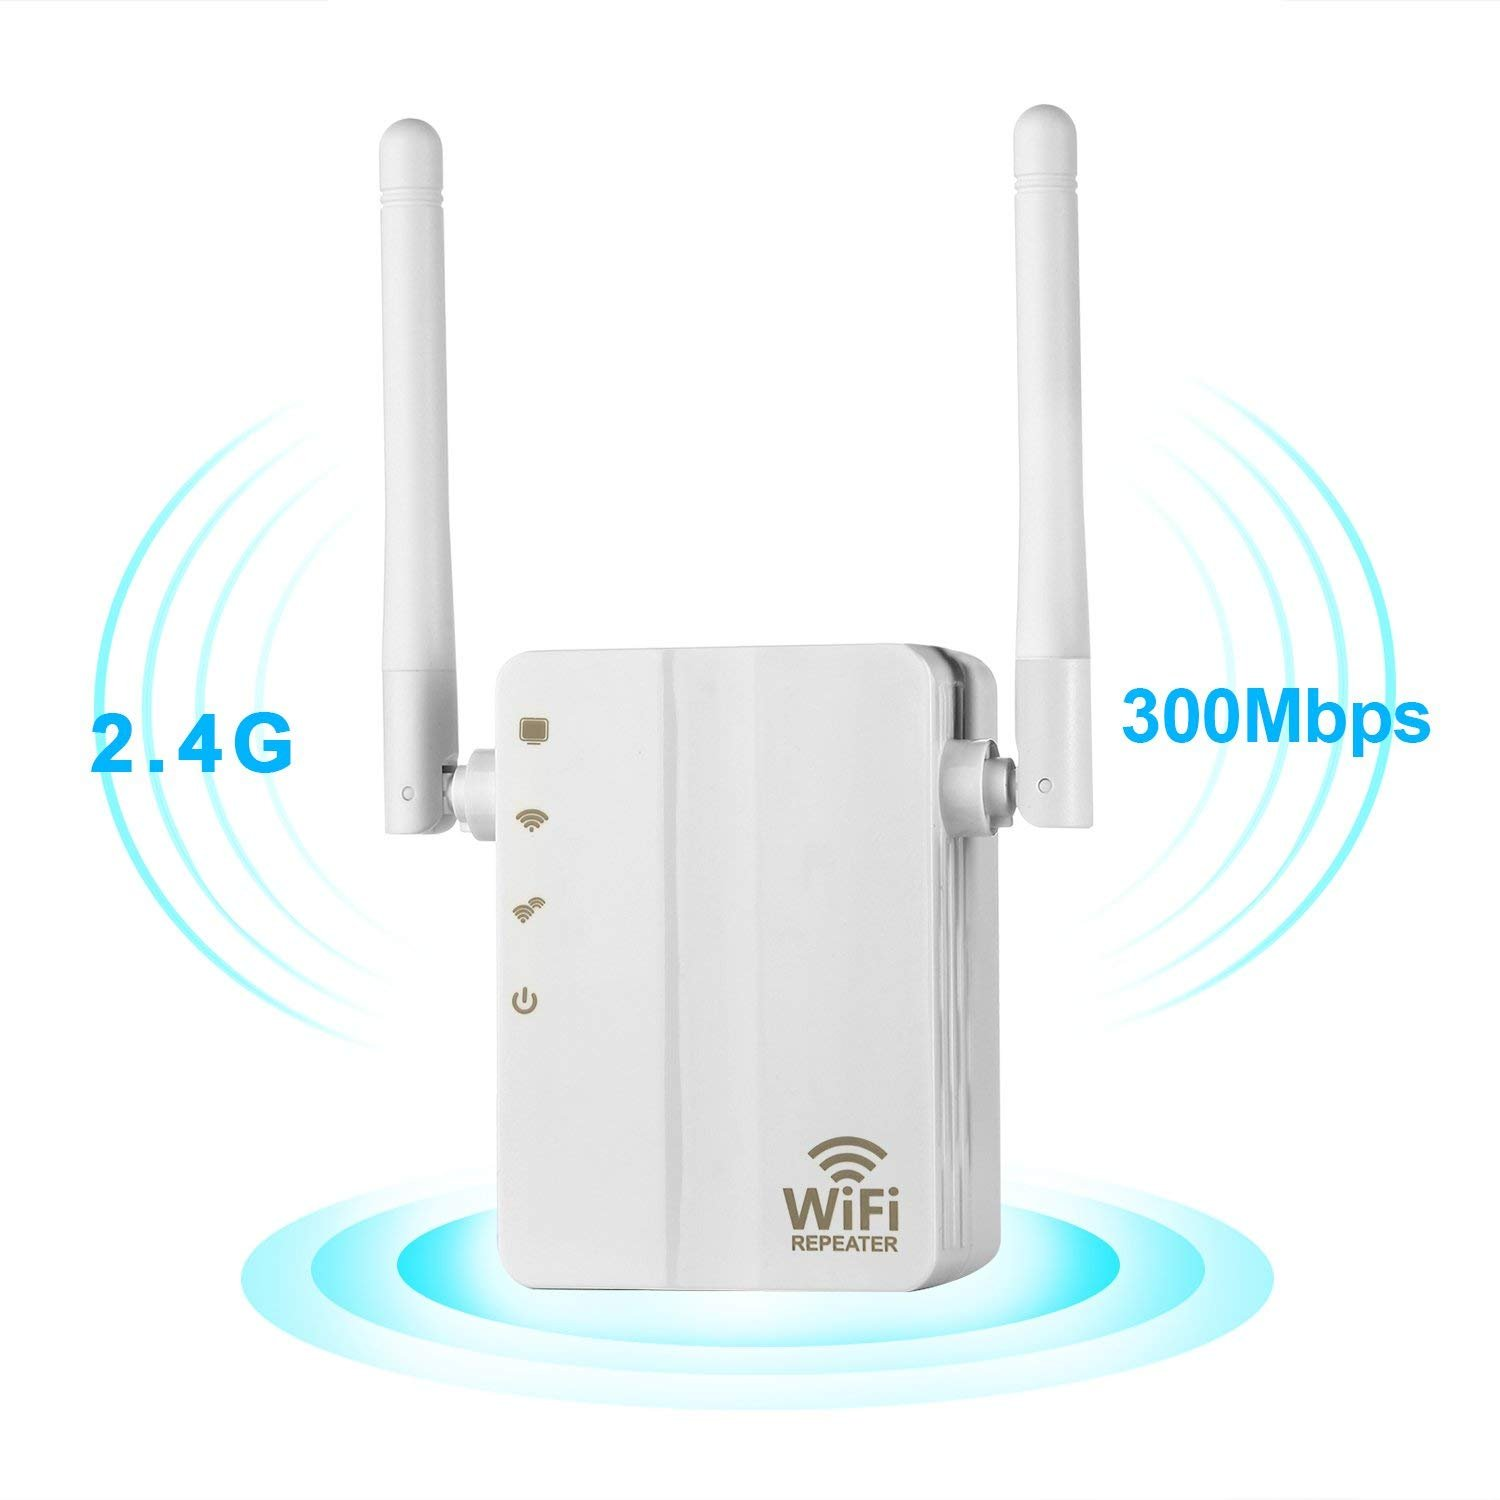 WiFi Range Extender, 300Mbps Fast Speed WiFi Booster Wireless Repeater with High Gain Dual External Antennas and 360 degree WiFi Coverage OfficeLead